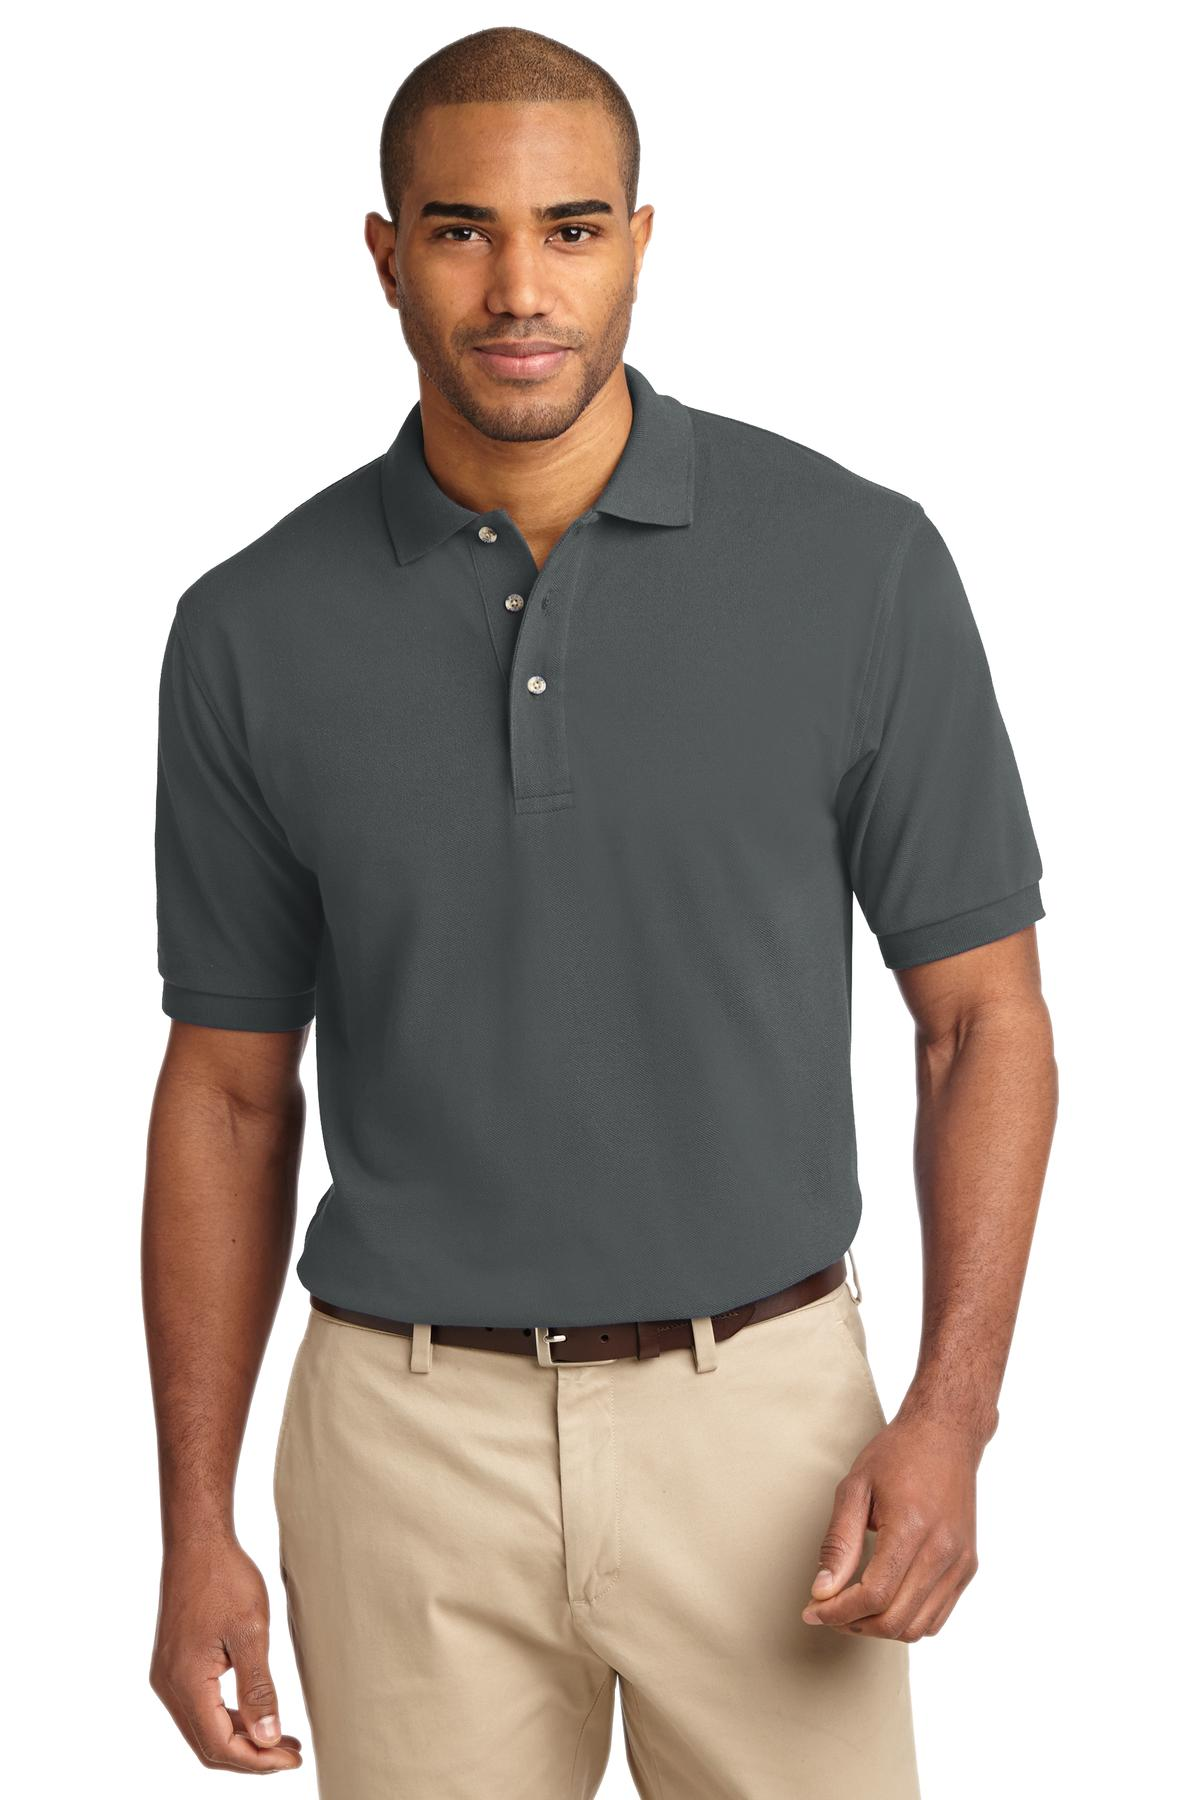 Port Authority ®  Tall Heavyweight Cotton Pique Polo.  TLK420 - Steel Grey